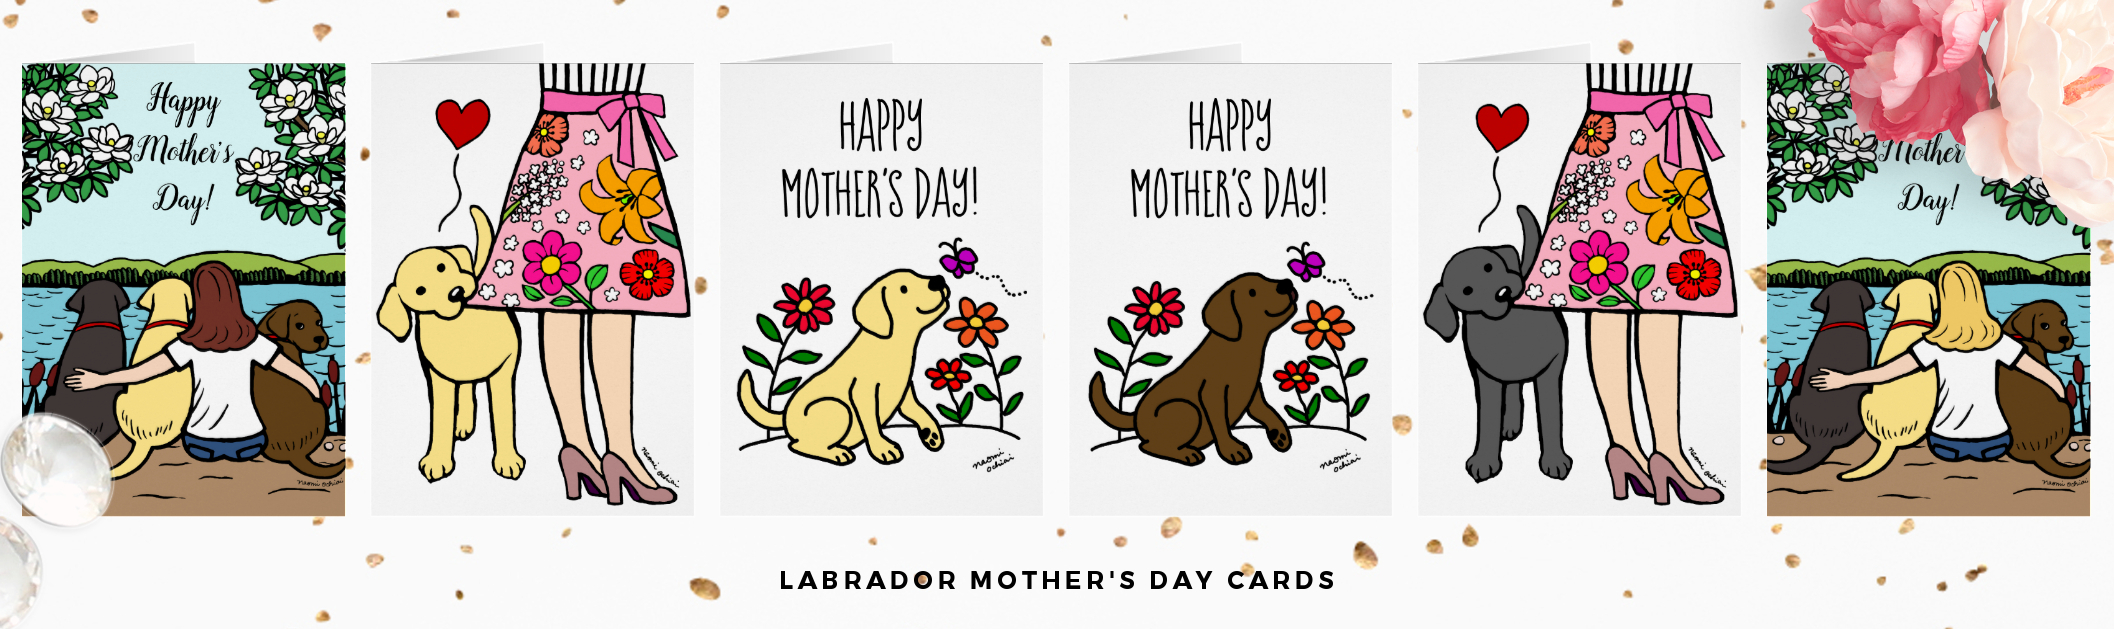 Labrador Retriever Mother's Day Greeting Cards by HappyLabradors in Zazzle